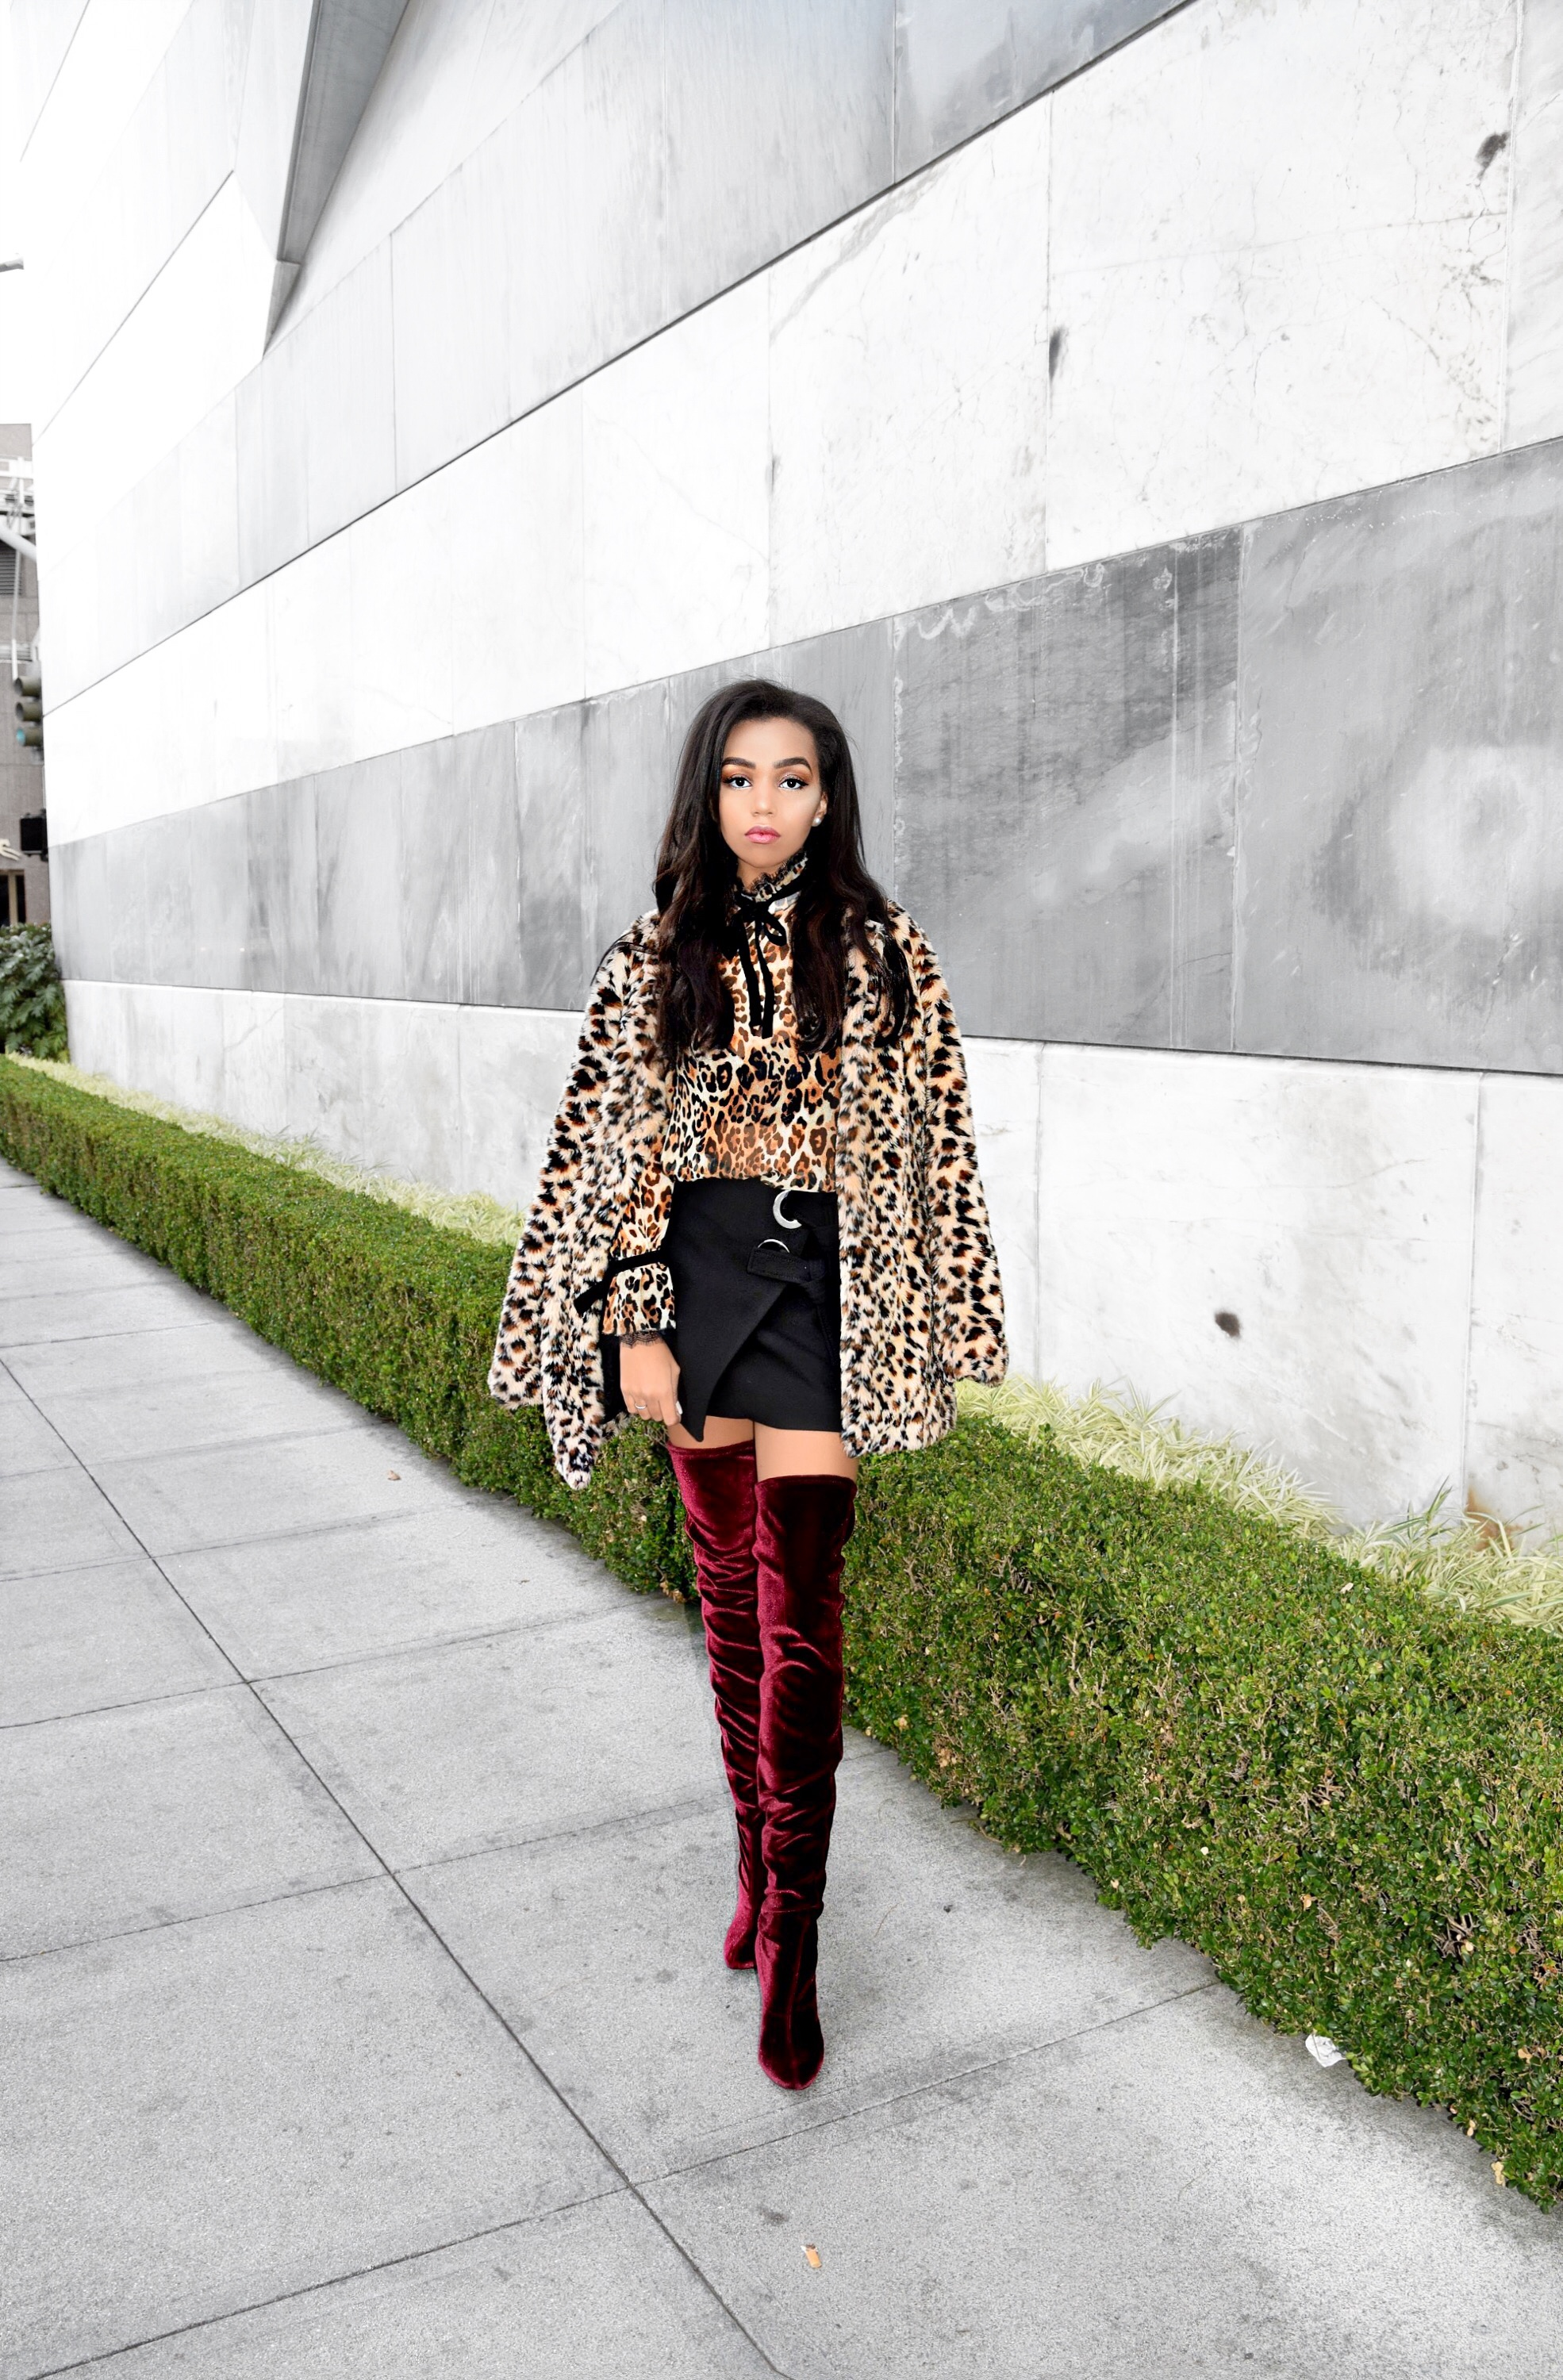 Cheetah Girl(s) // The Leopard & Cheetah Print Trend // Intermix Exclusive Leopard Print and Velvet Blouse // Zara Wrap Black Mini Skirt // Zara Velvet Thigh High Burgundy Bordeaux Wine Color Boots // Gucci Marmont Black Quilted Bag // ASOS Leopard Cheetah Print Fur Textured Coat // Winter and Spring Street Style // Los Angeles Fashion Blogger Daphne Blunt: To Style, With Love